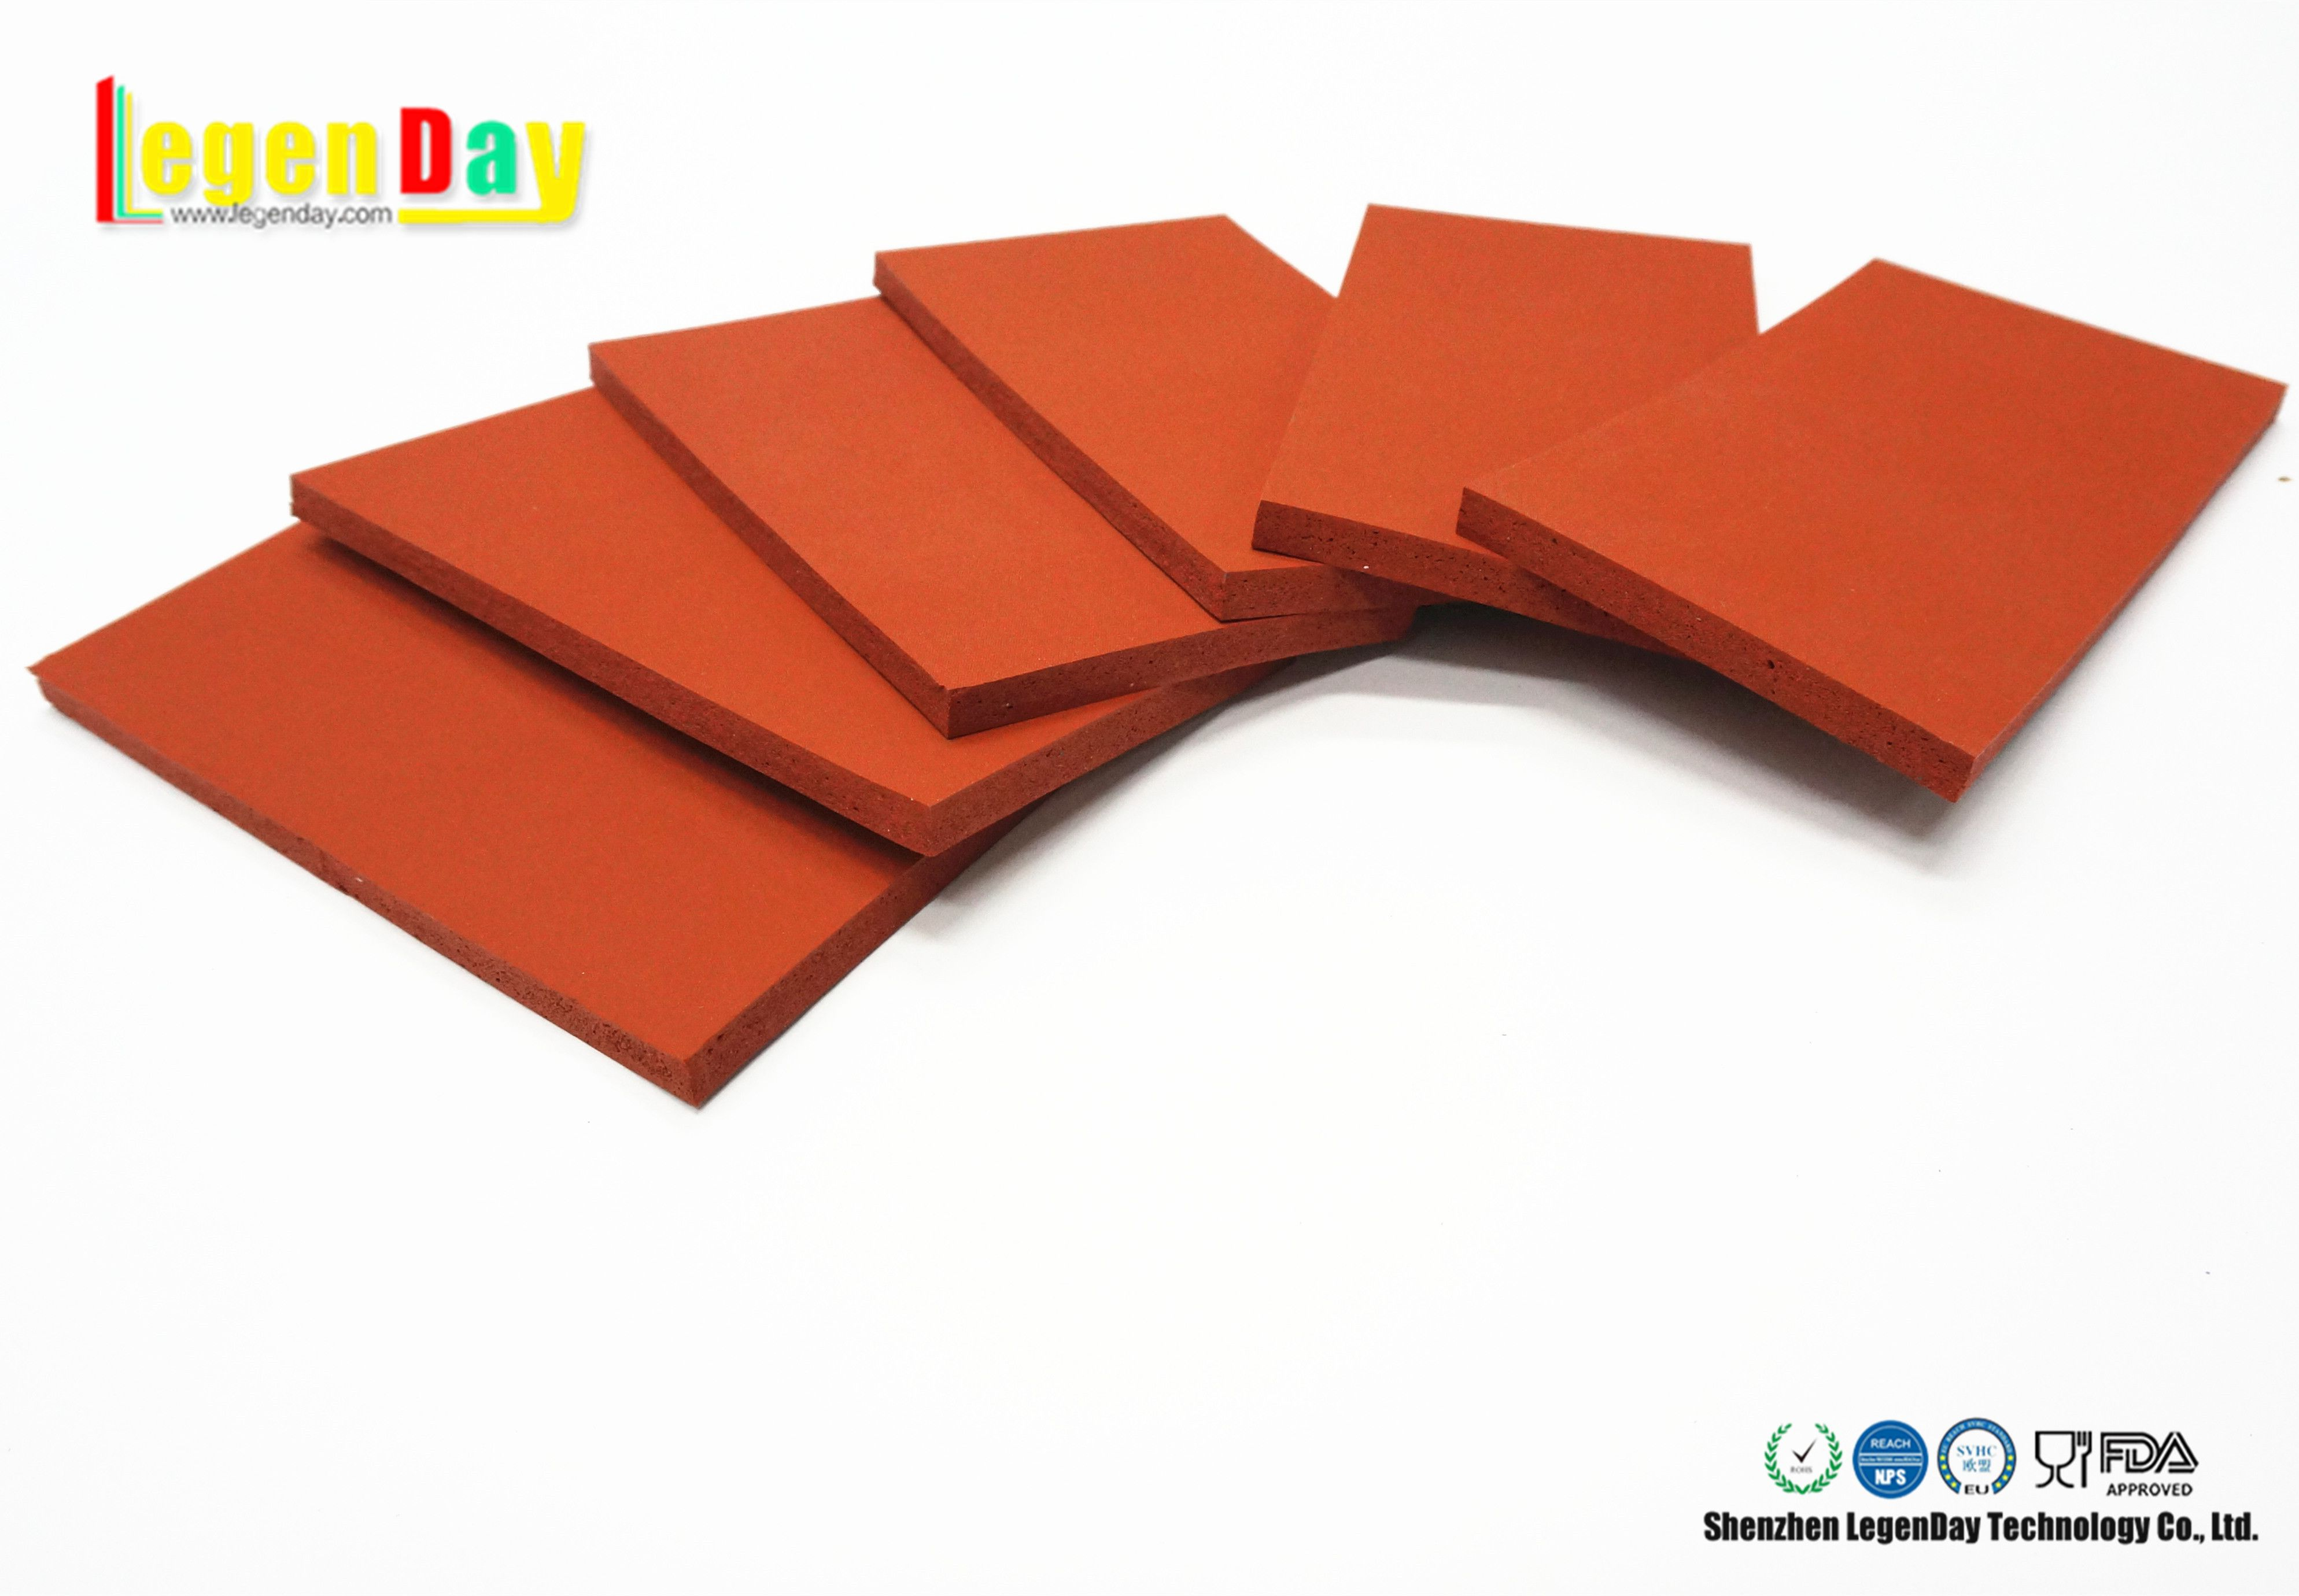 Silicone Rubber Sheet 1 Wide Application In Food Chemical Industry Hospital Electronics Etc 2 Long Life Industrial Accessories Silicone Rubber Silicone Sheets